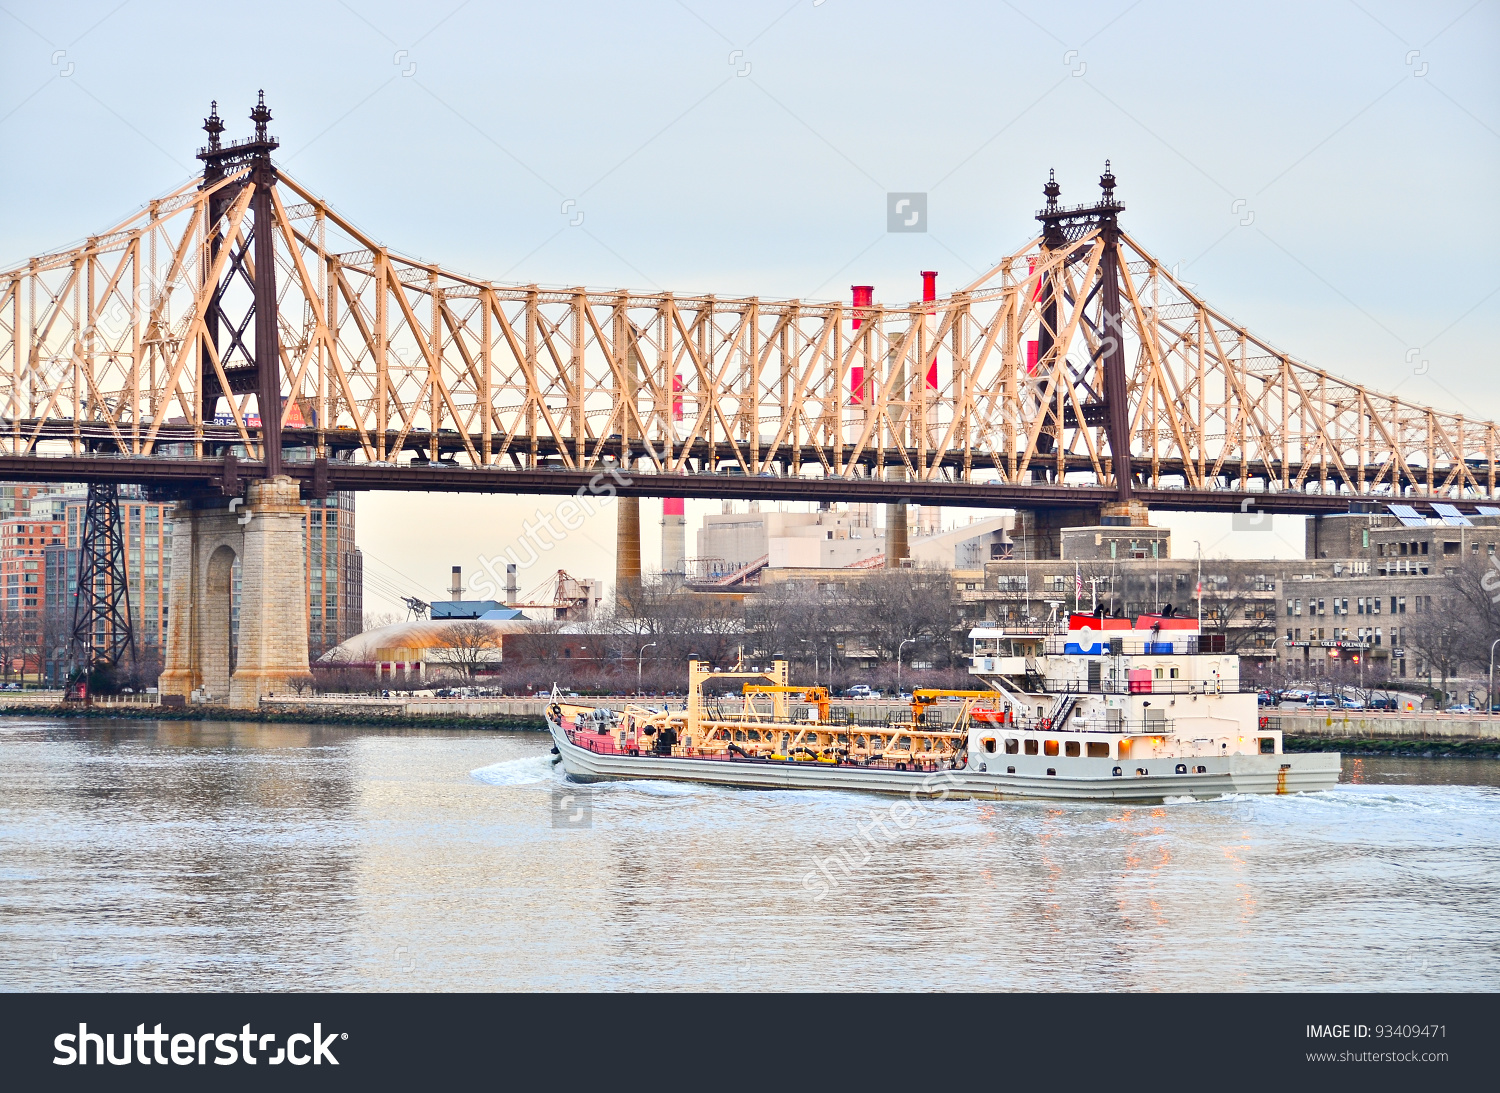 Ed Koch Queensboro Bridge New York Stock Photo 93409471.